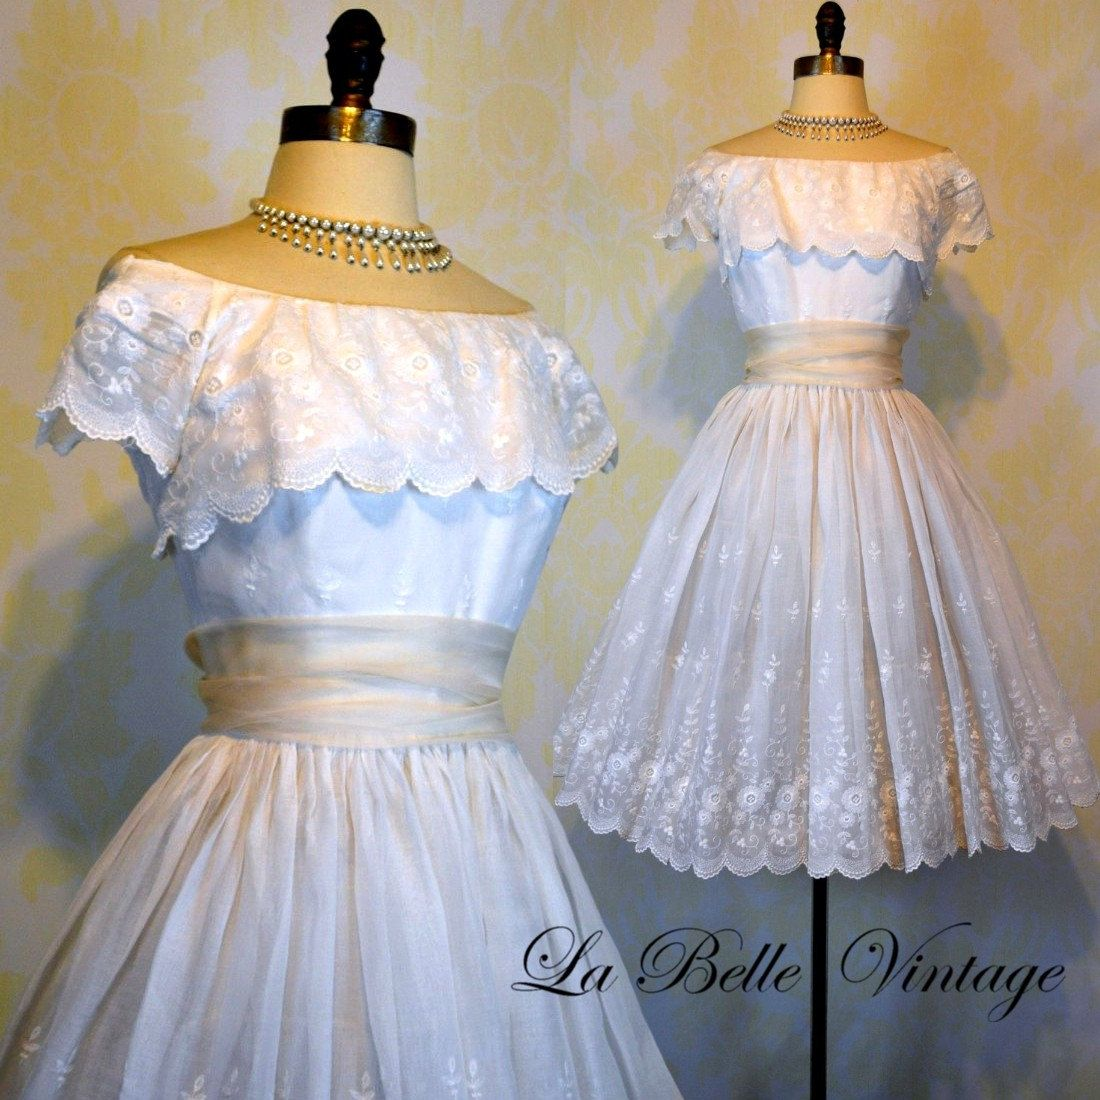 Vintage Wedding Dress Xs: Suzy Perette Vintage 50s Wedding Dress XS S By